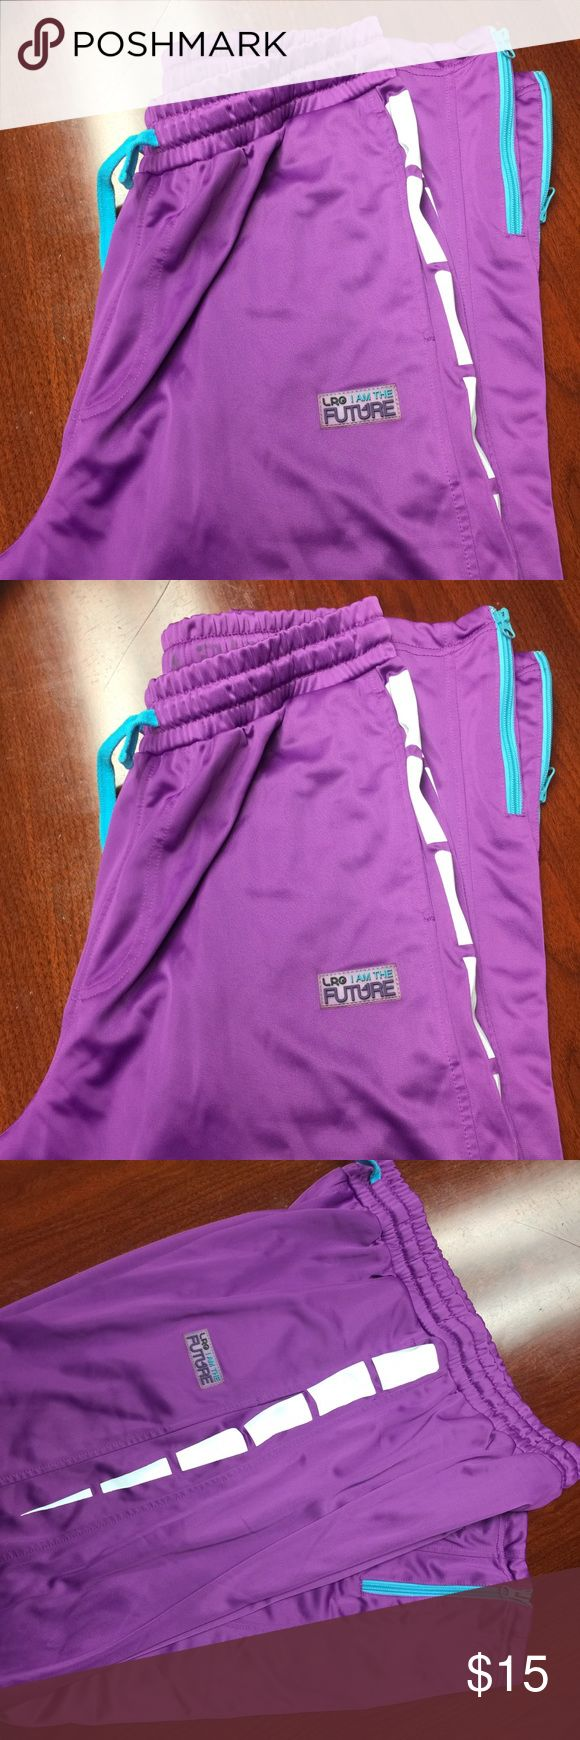 LGR Sweatpants For Men Purple Sweatpants for Men LRG , comfortable and warm ! Zipper in both legs bottom back LRG Pants Sweatpants & Joggers